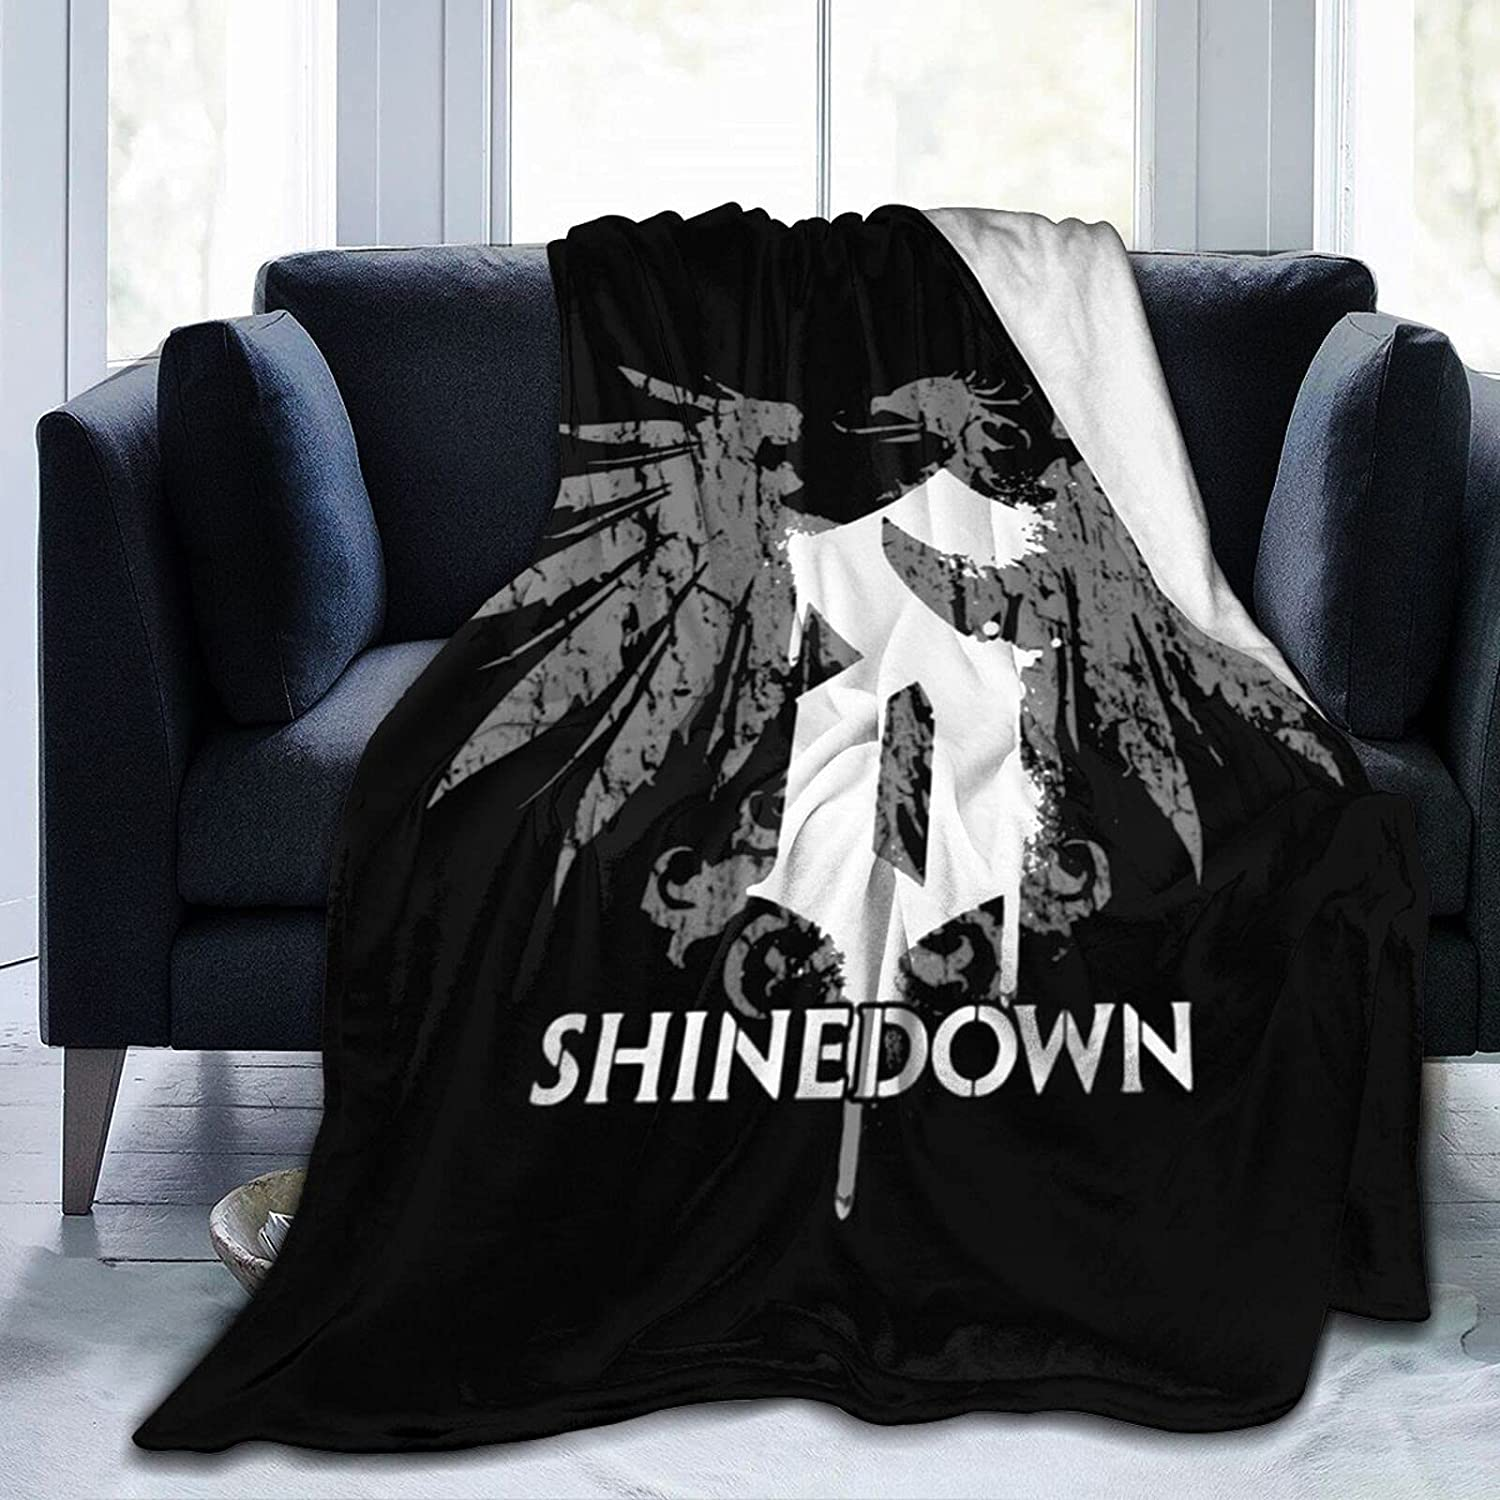 Shinedown Blanket Super special price 3D Print Camping Warm Blankets Light B Columbus Mall